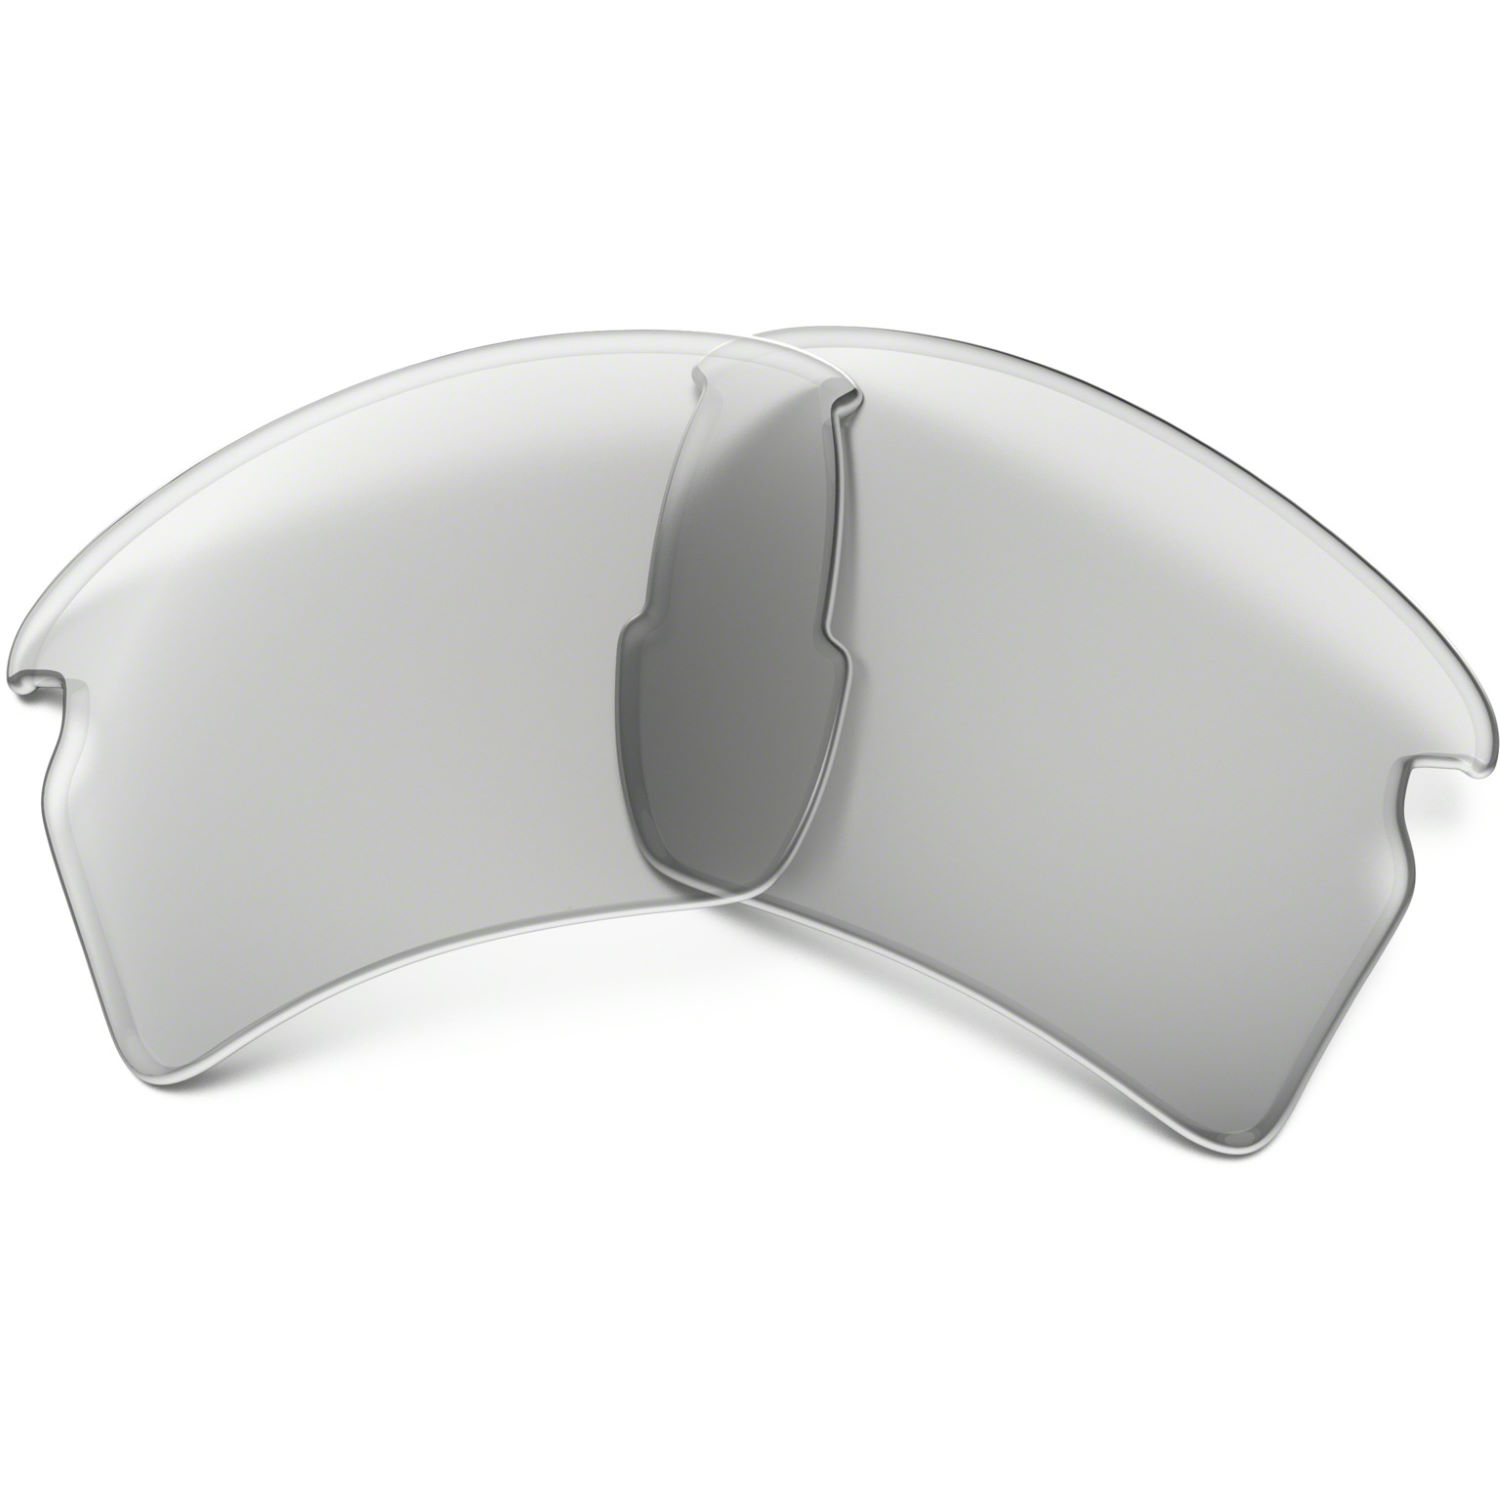 oakley clear sunglasses bncy  Oakley Flak 20 XL Replacement Lens Clear